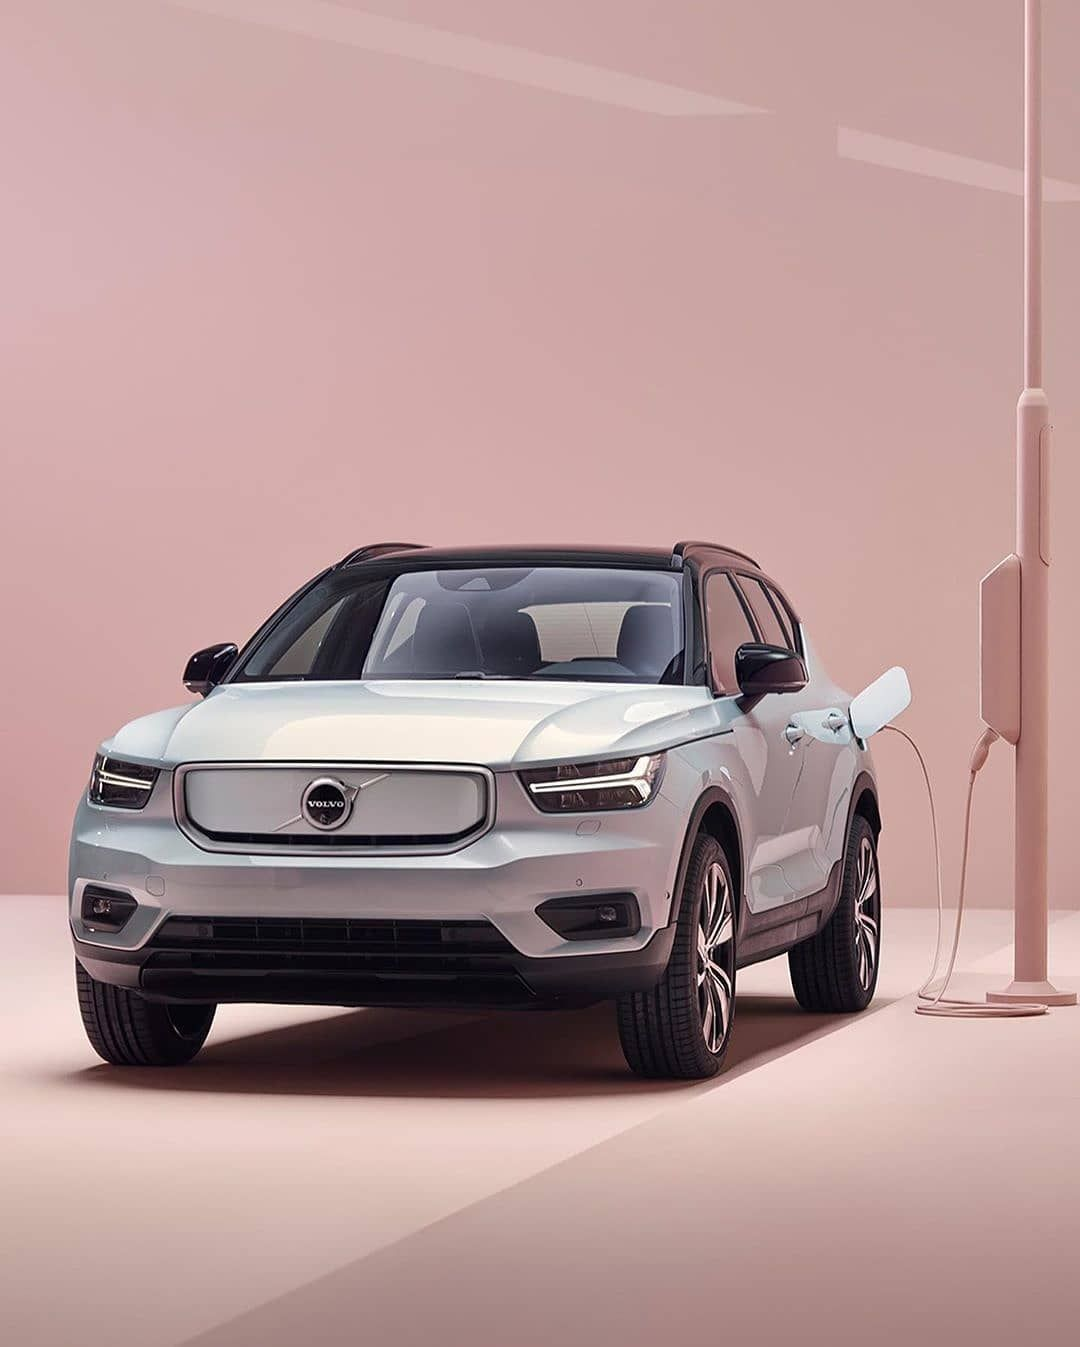 Repost Caranddriver Get Repost The First Volvo Ev Will Be This Xc40 Recharge Which Makes 408 Horsepower And Will Offer Up To 250 2020